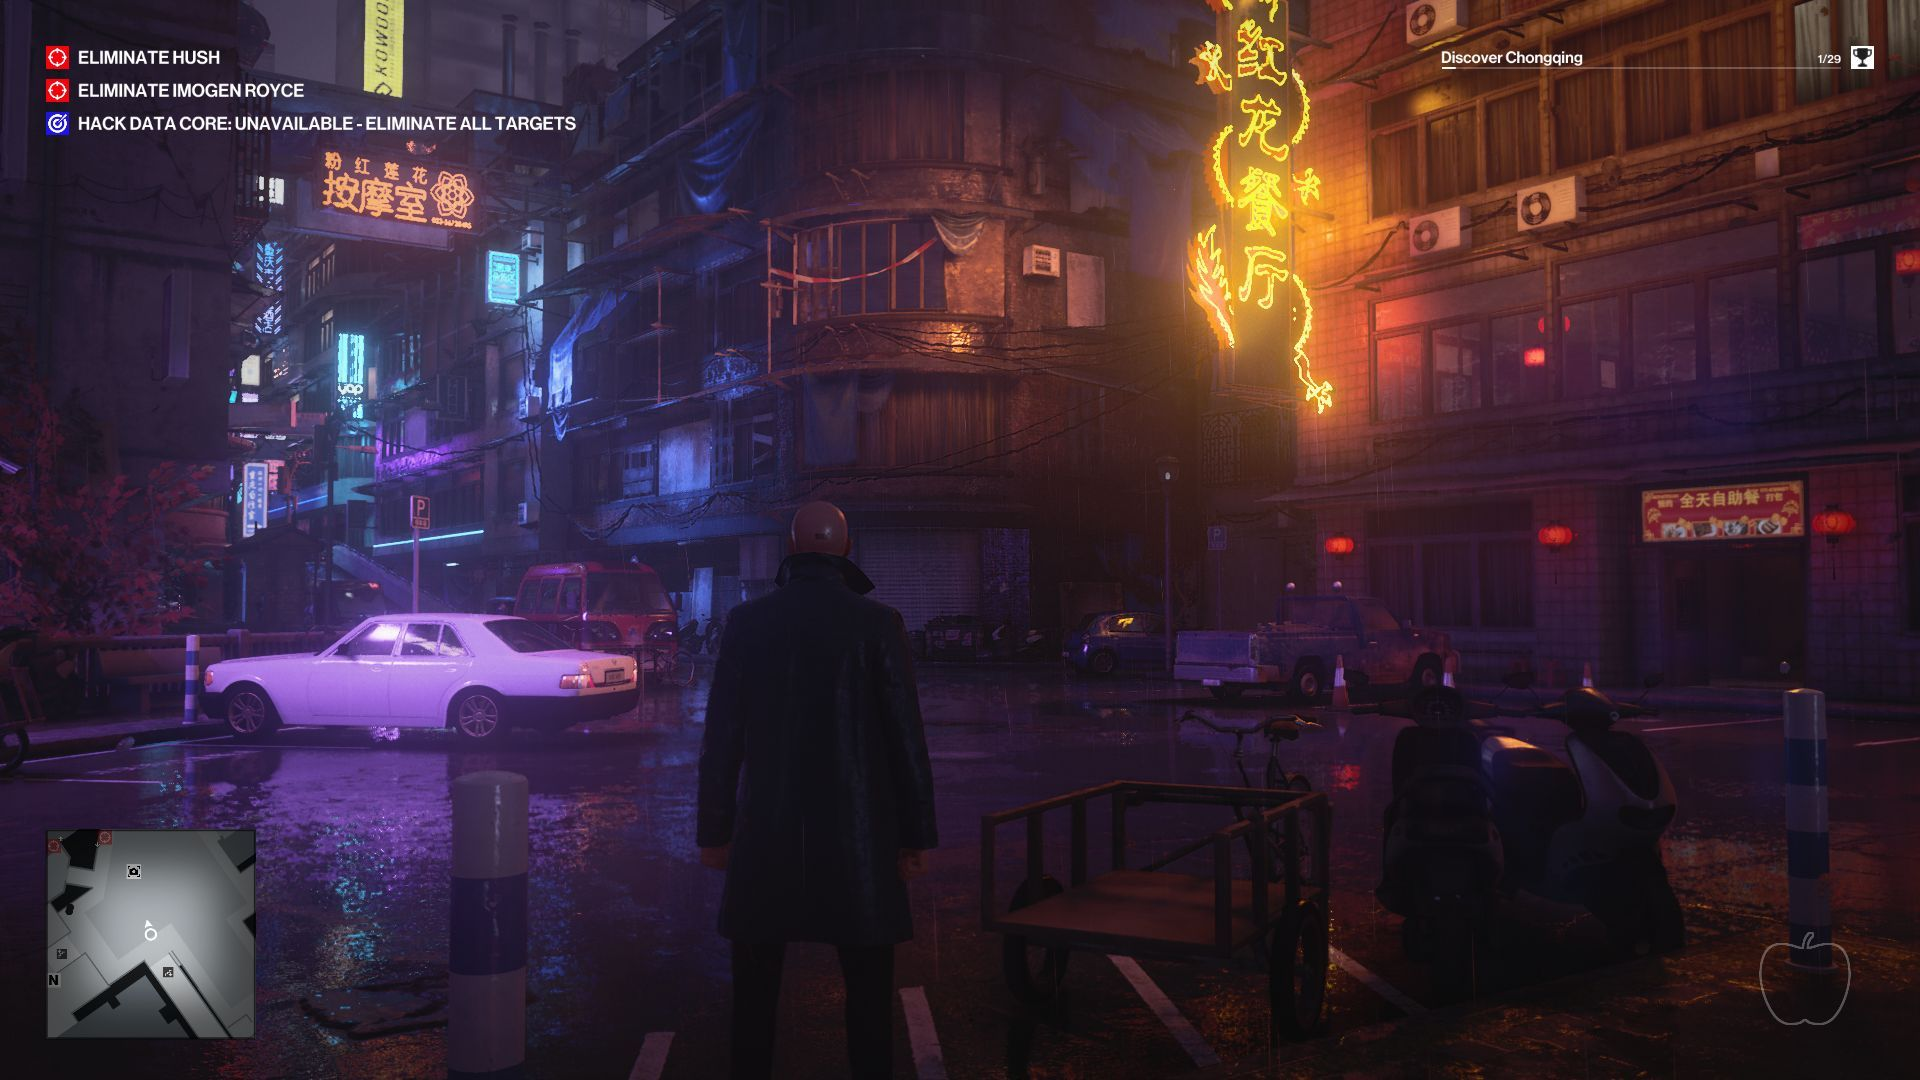 Agent 47 stands on a dense street corner in China, looking at some neon signs